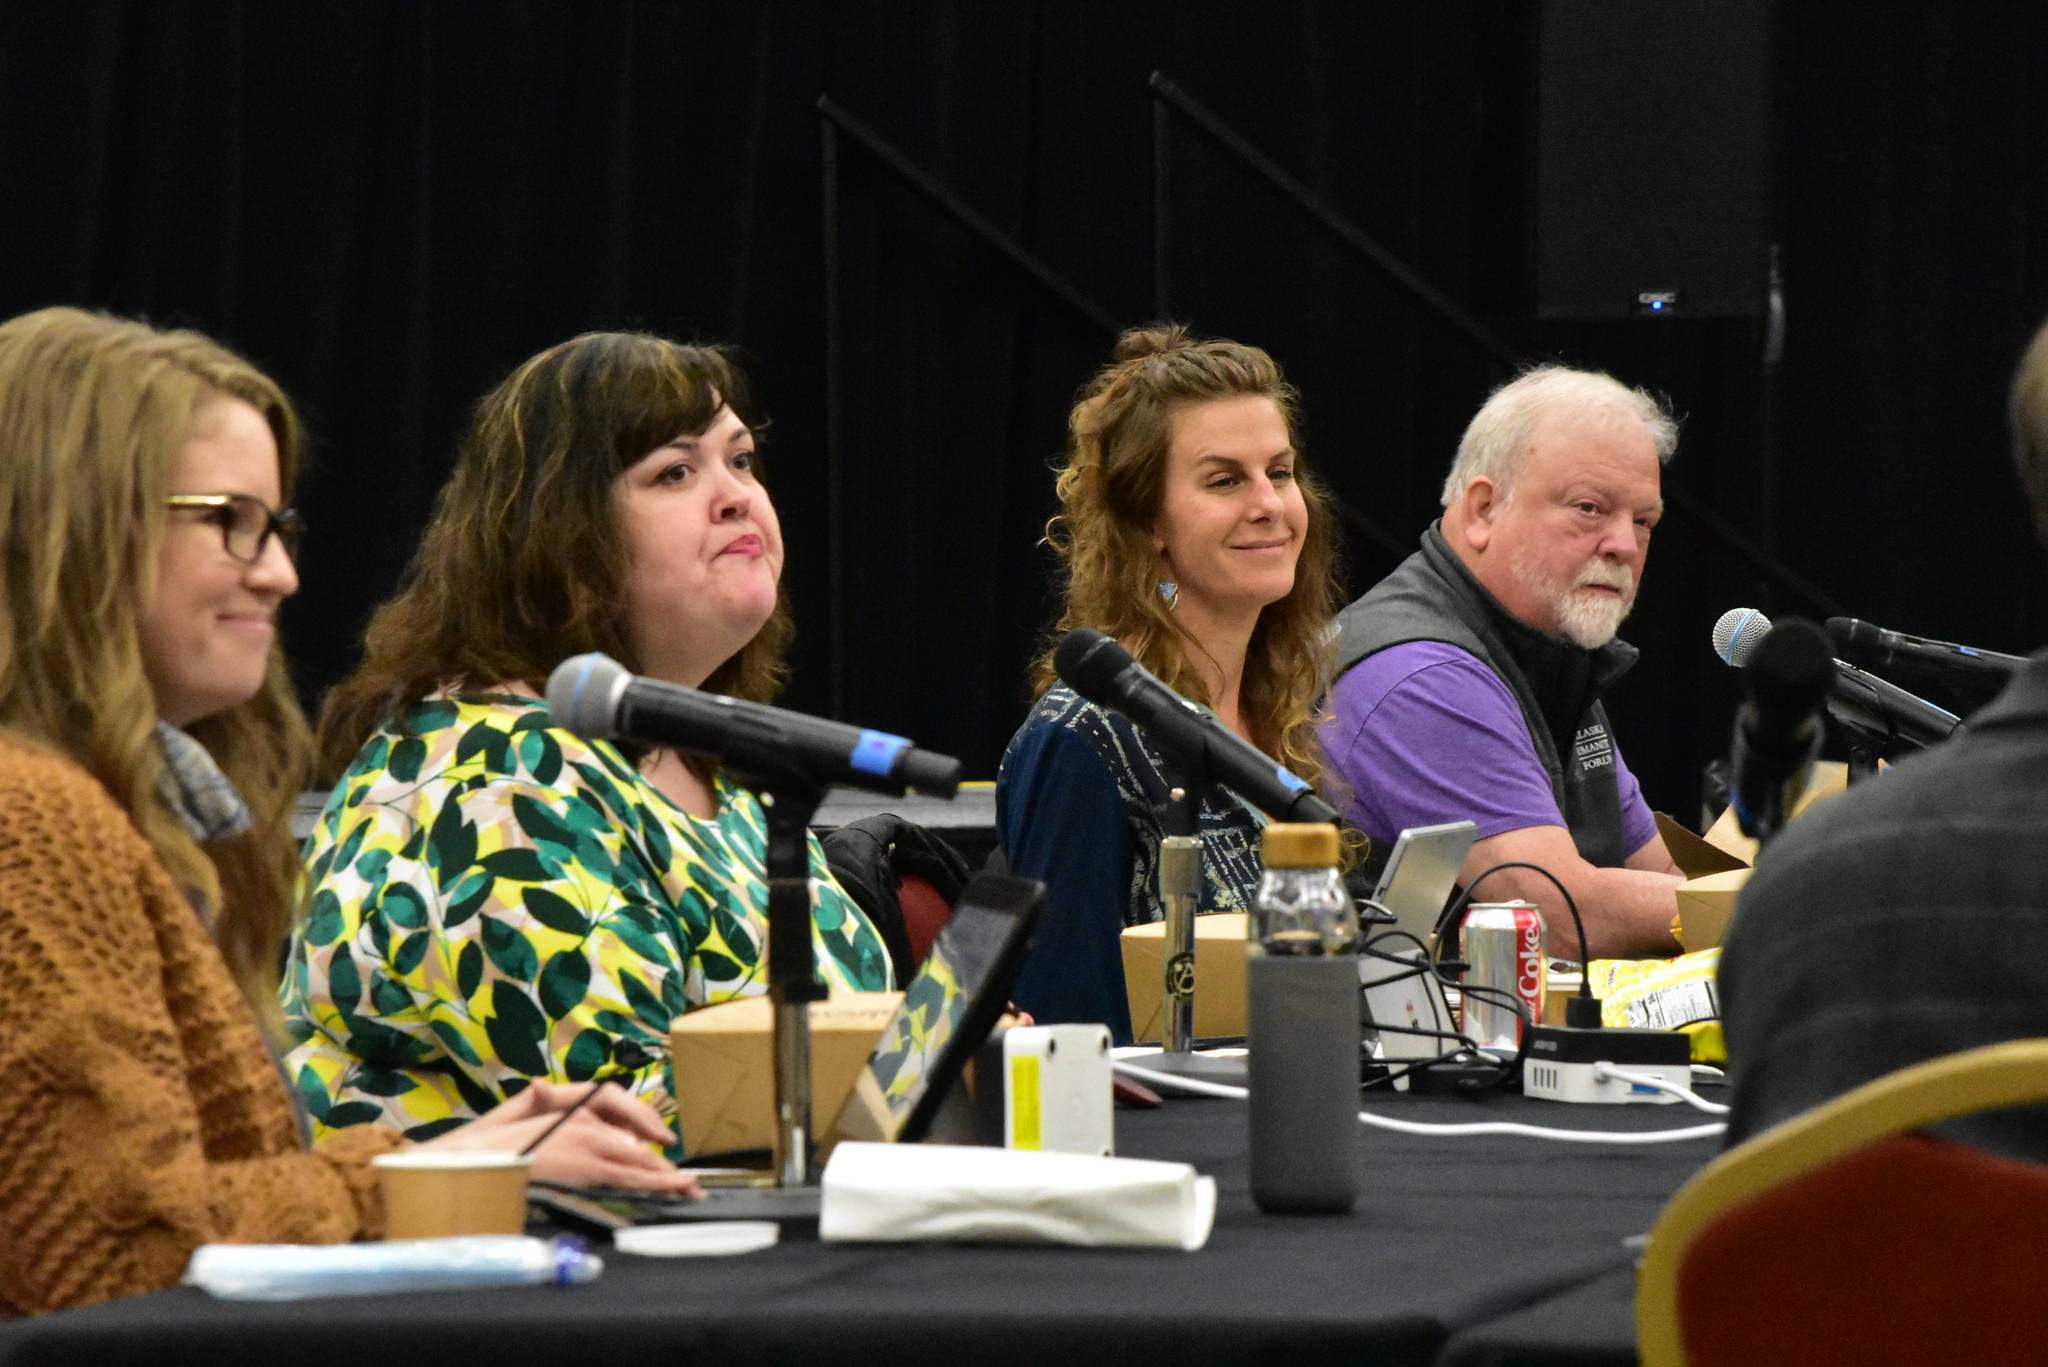 Peter Segall | Juneau Empire                                 Members of the Juneau Economic Stabilization Task Force established by Mayor Beth Weldon at a meeting at Elizabeth Peratrovich Hall on Friday, June 26, 2020. Task force members brainstormed ideas to try and help businesses struggling with the fallout from the COVID-19 pandemic.